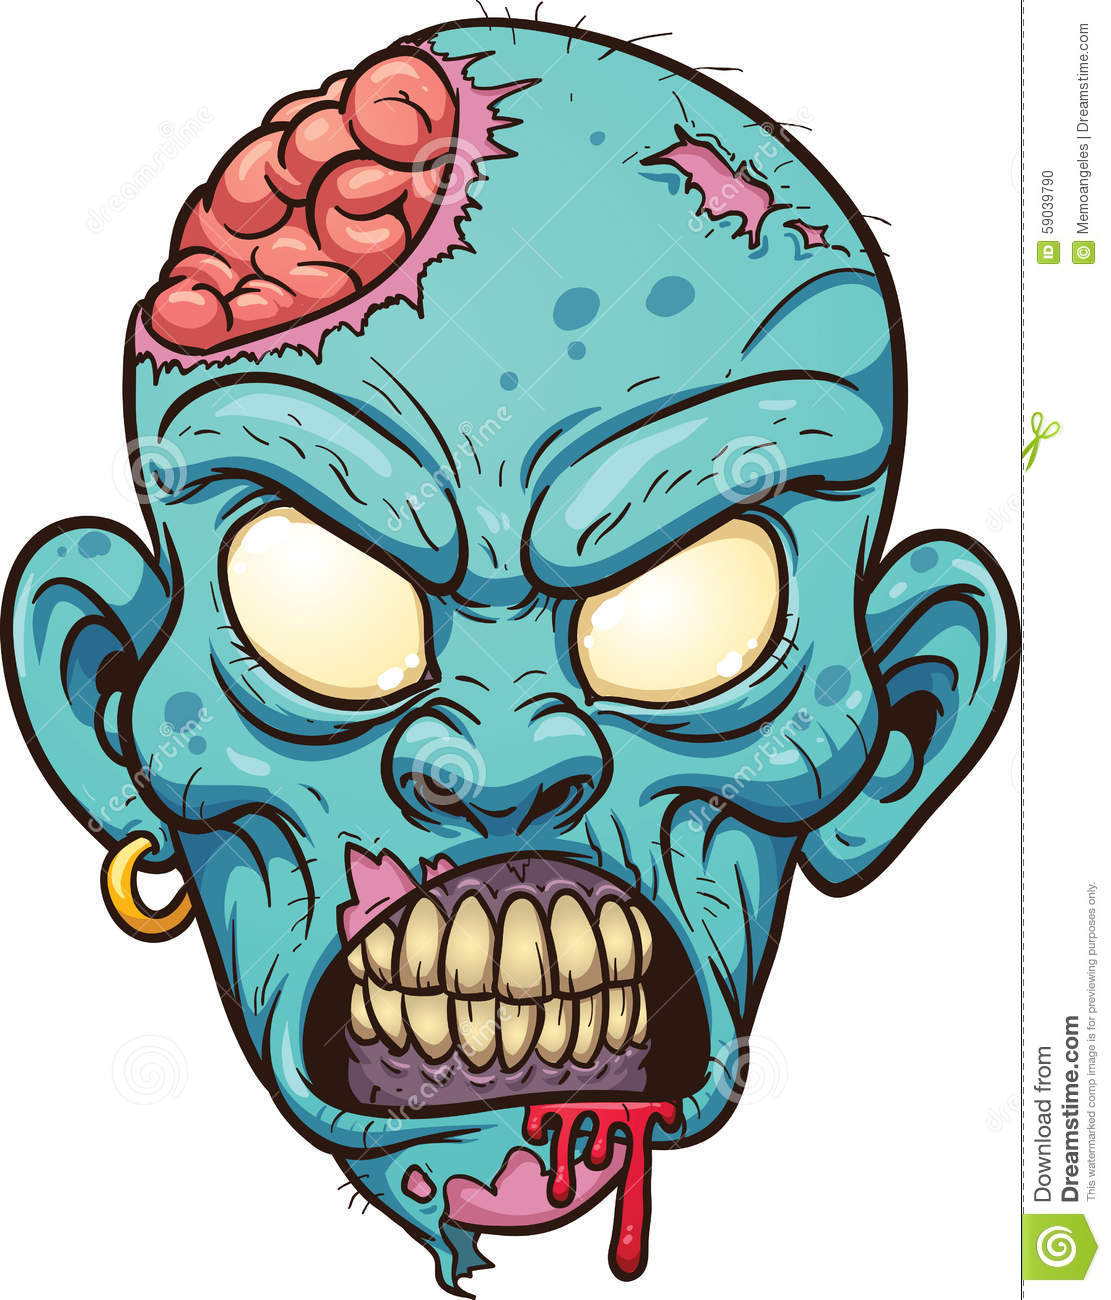 Cartoon zombie head stock vector. Illustration of ...